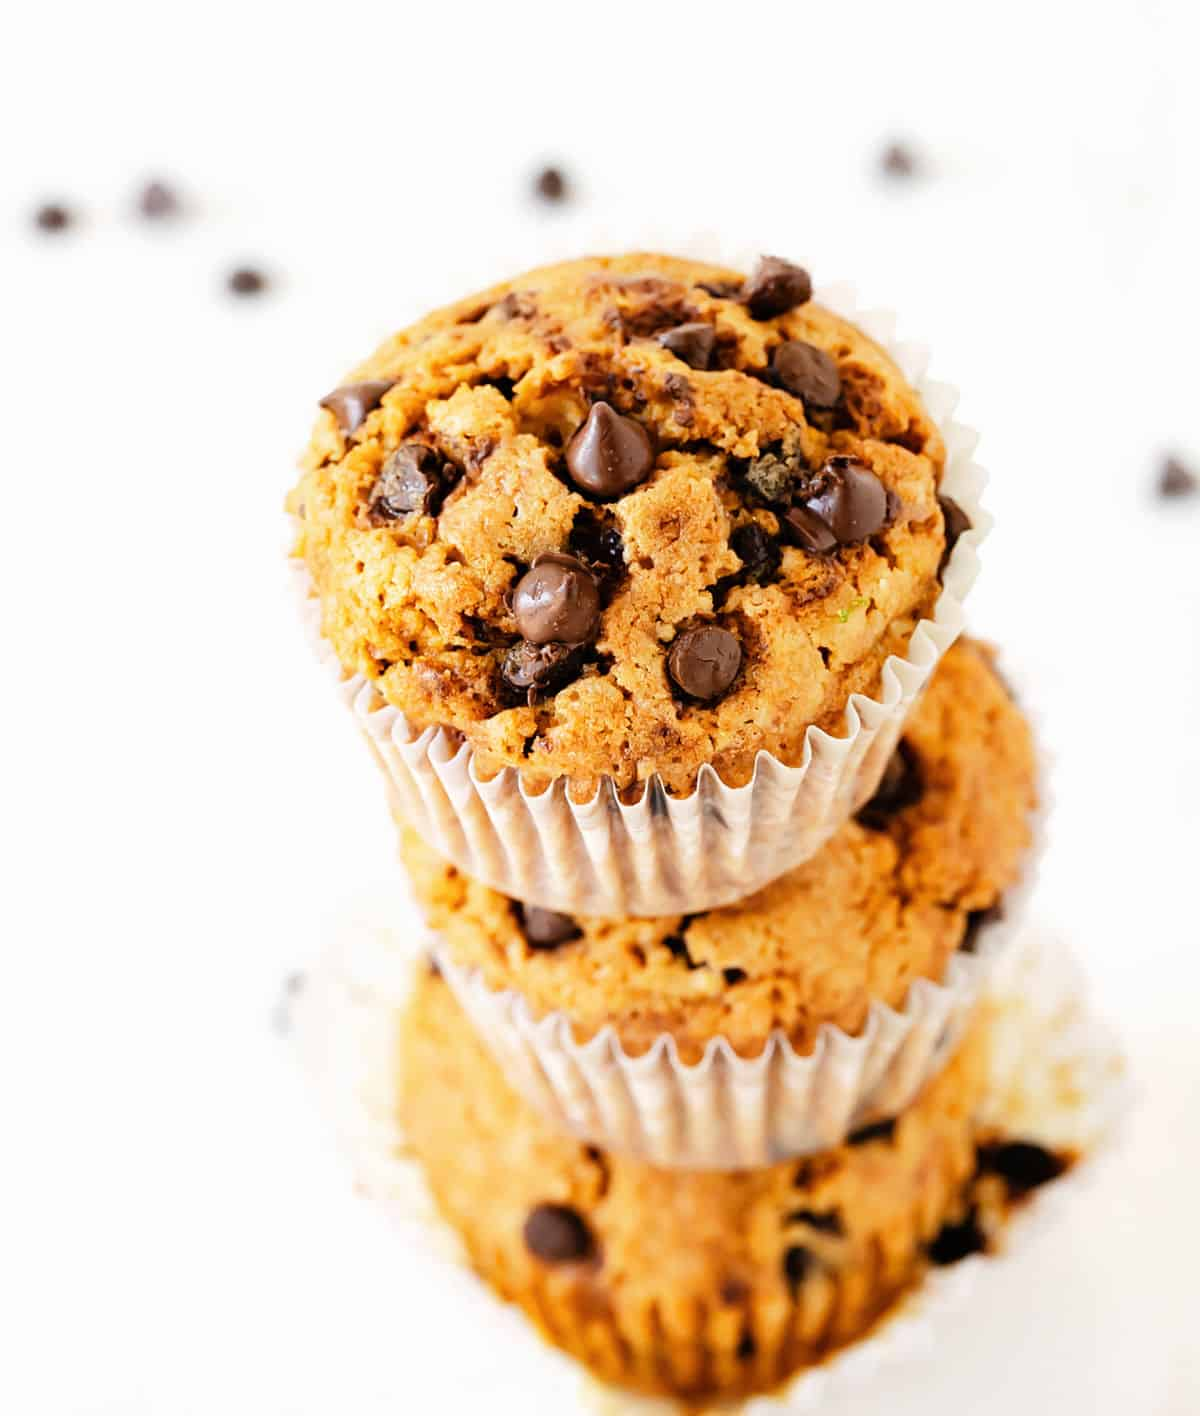 Top view of stacked chocolate chip muffins on paper liners, white background